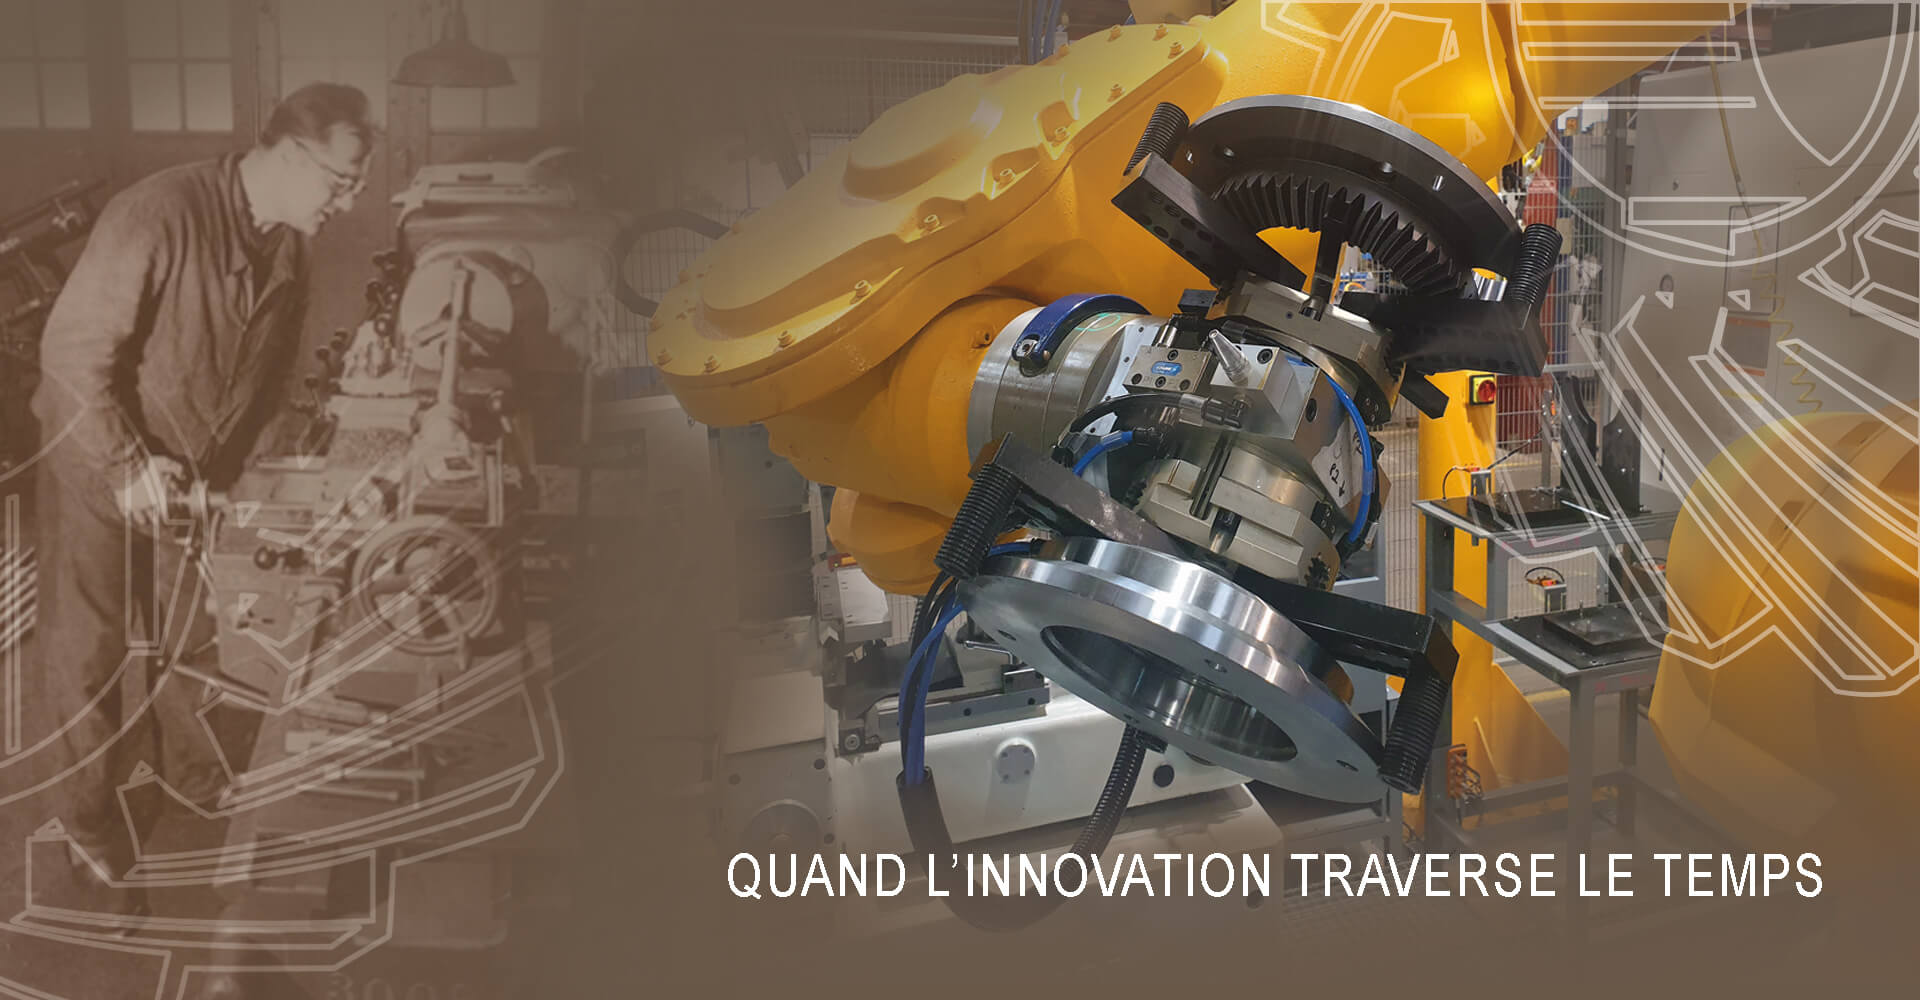 Qaund l'innovation traverse le temps